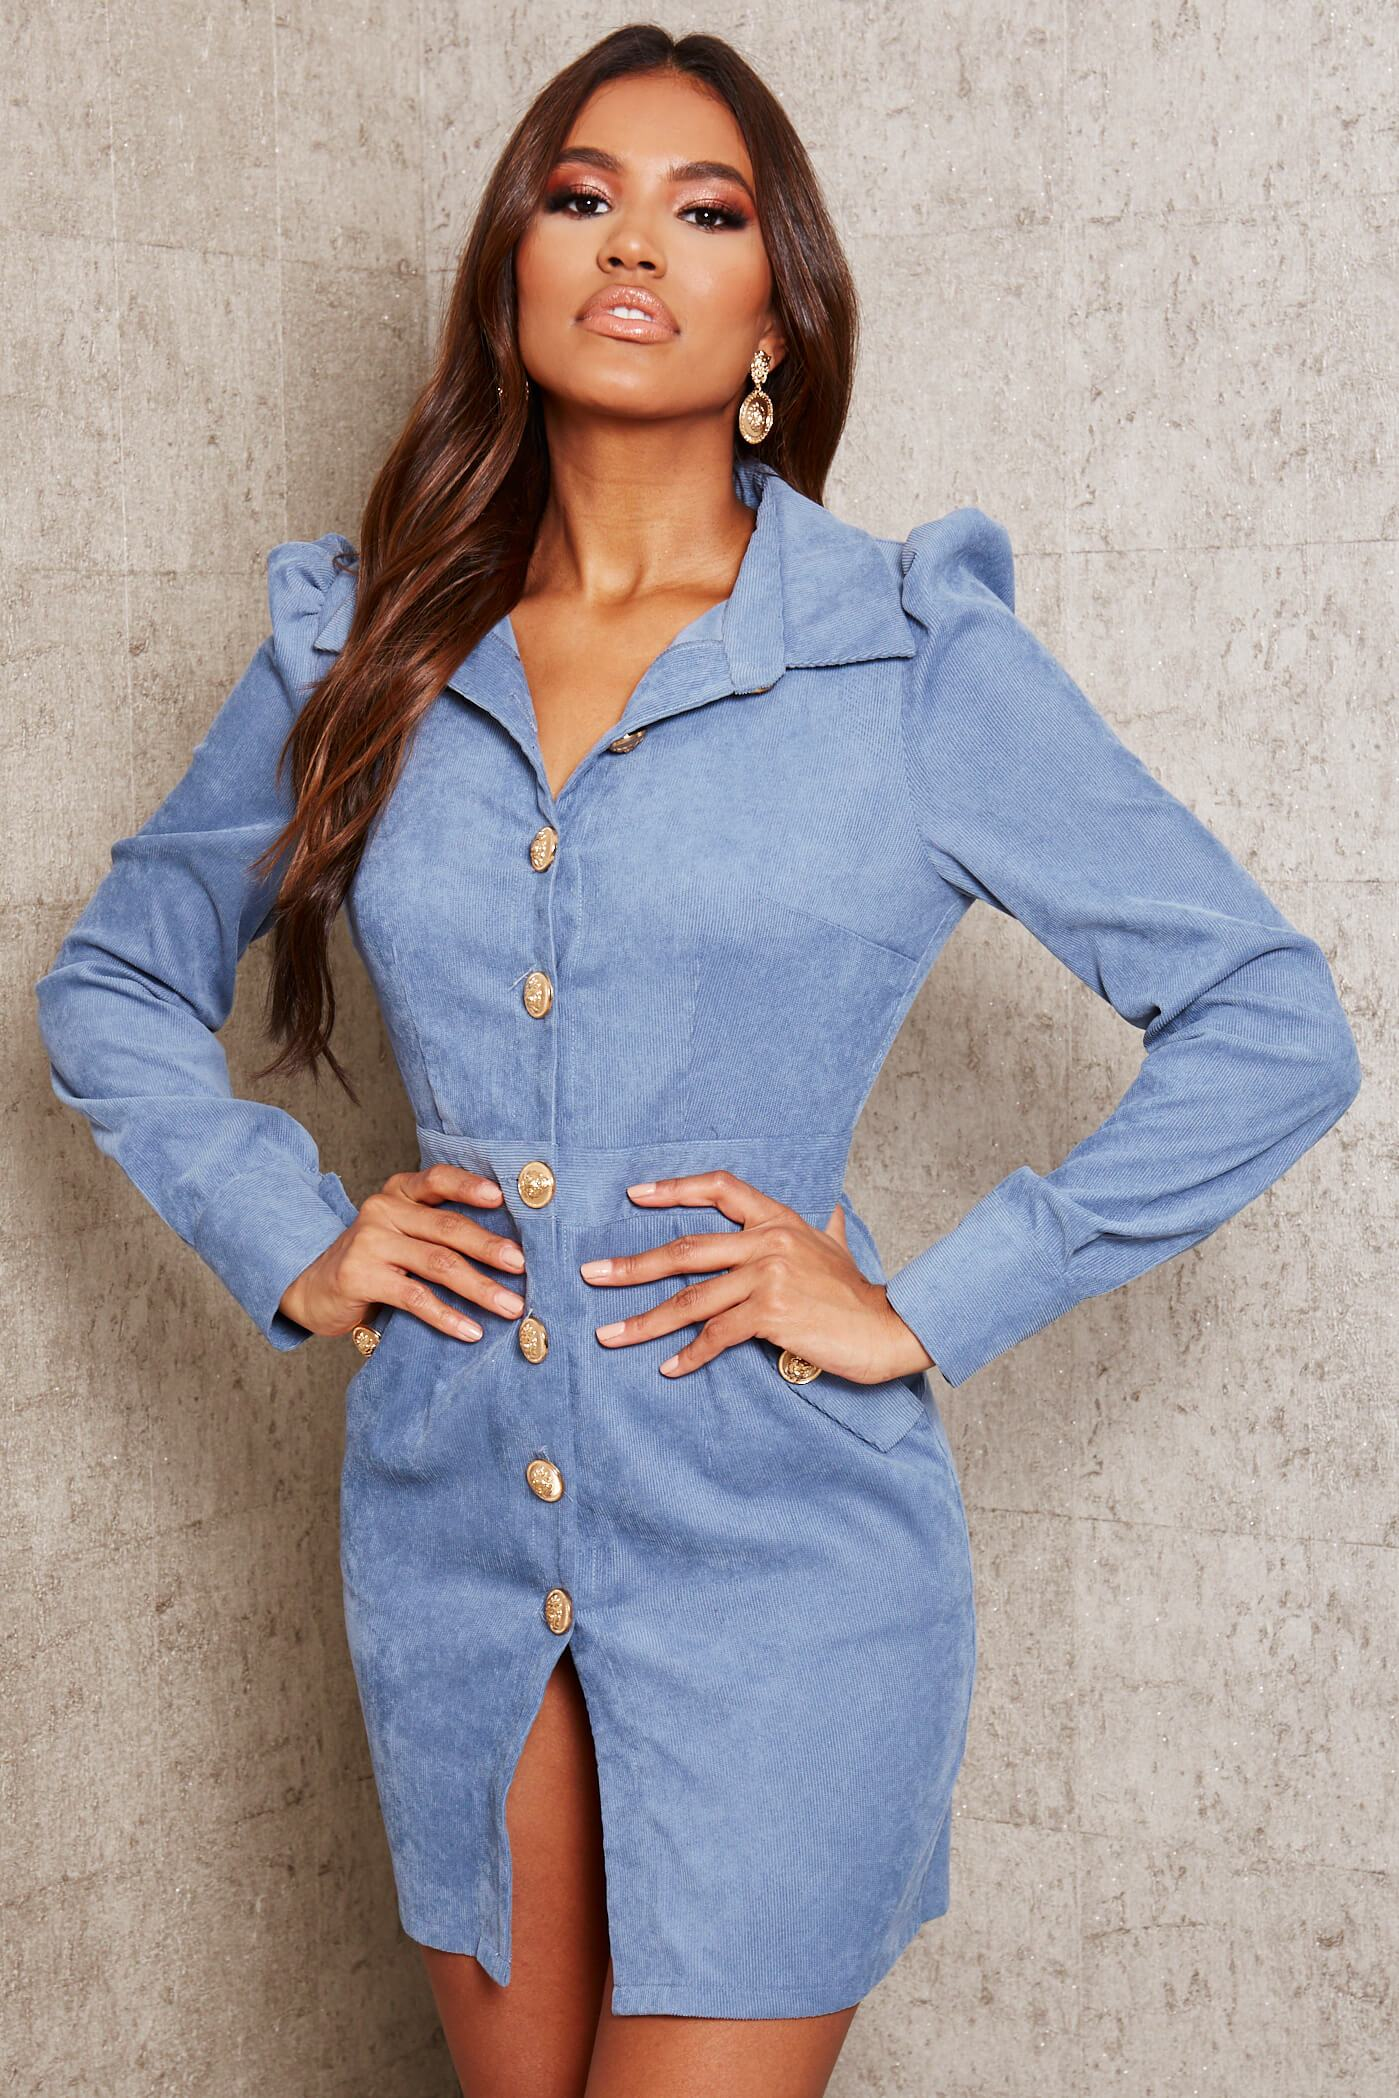 Baby Blue Cord Military Button Front Blazer Dress - 6 / BLUE von ISAWITFIRST.com